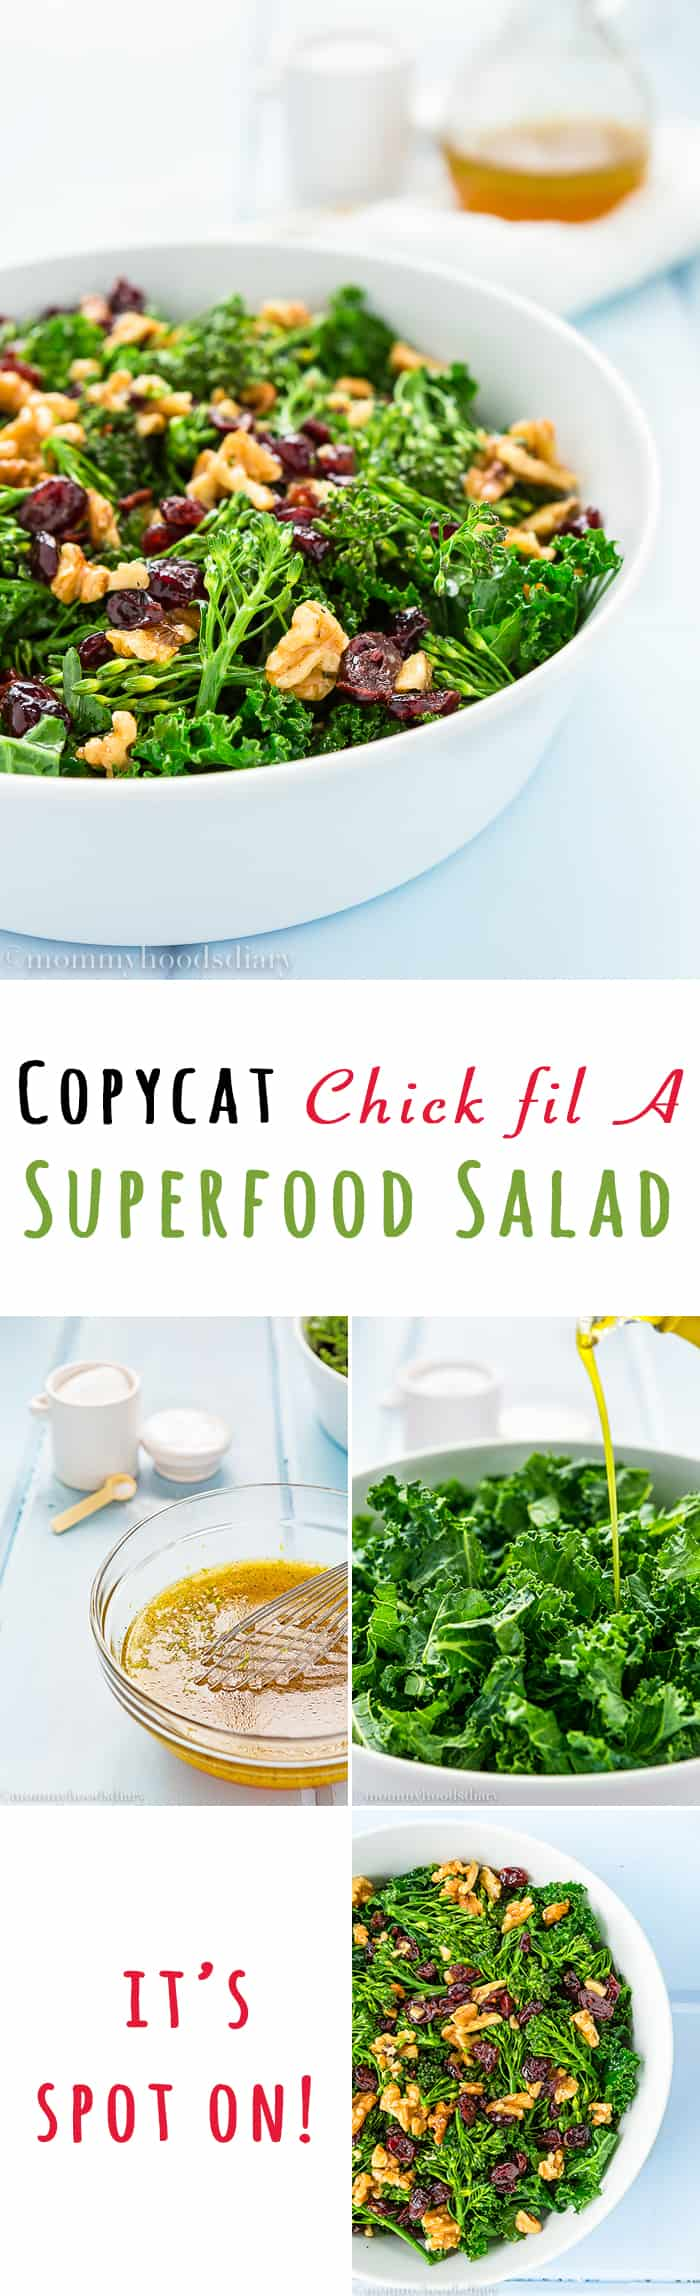 Copycat-Chick-fil-A-Superfood-Salad-Long-Pin-1